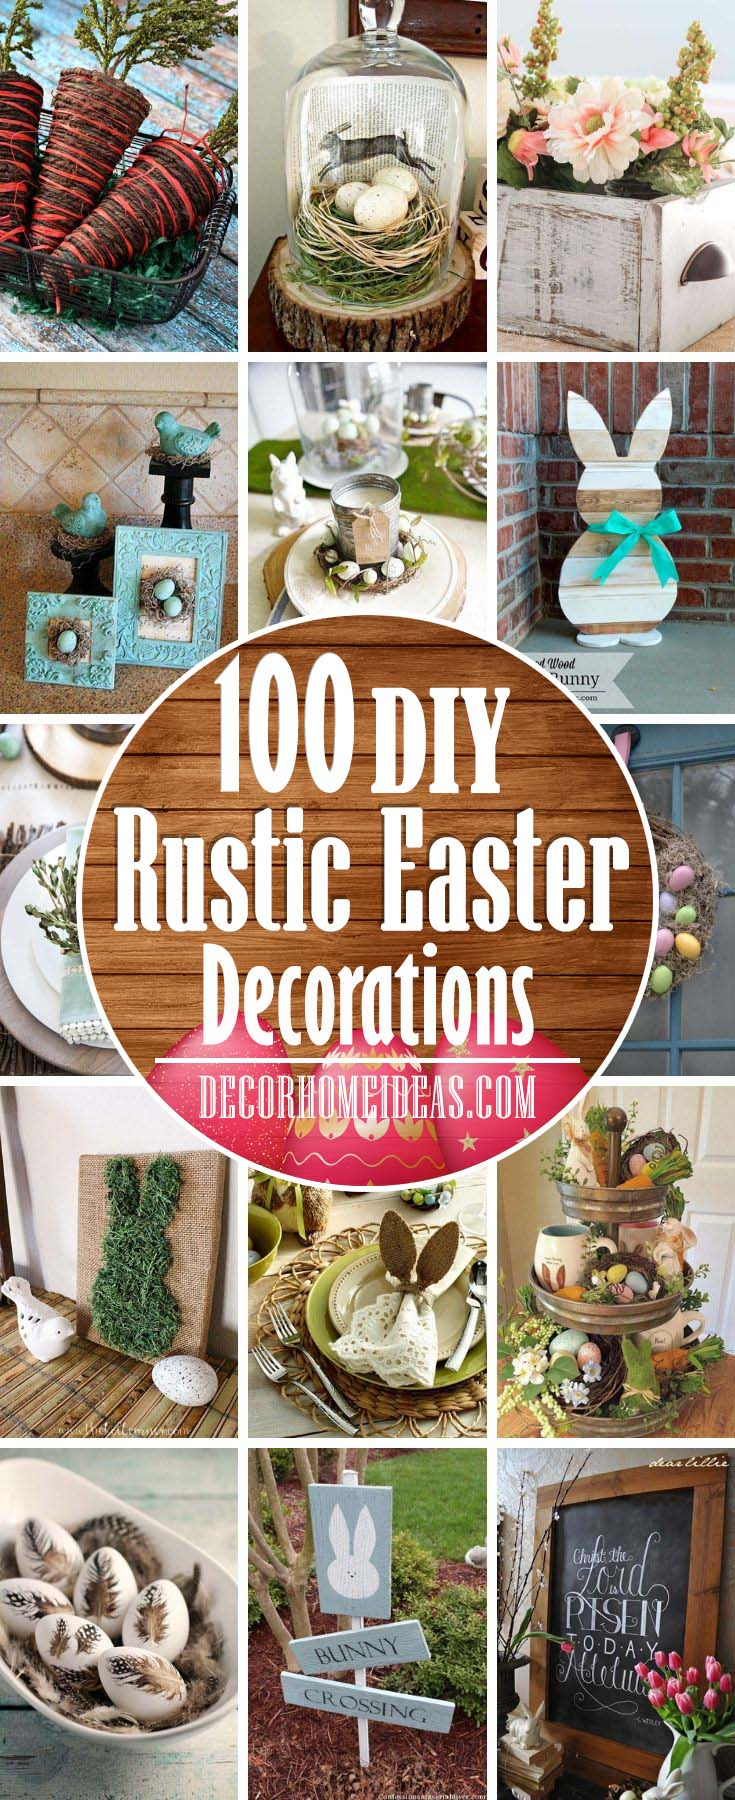 DIY Rustic Easter Decorations. Make your holiday decor stand out with these amazing DIY rusitc Easter decorations. #rustic #Easter #decorations #decorhomeideas